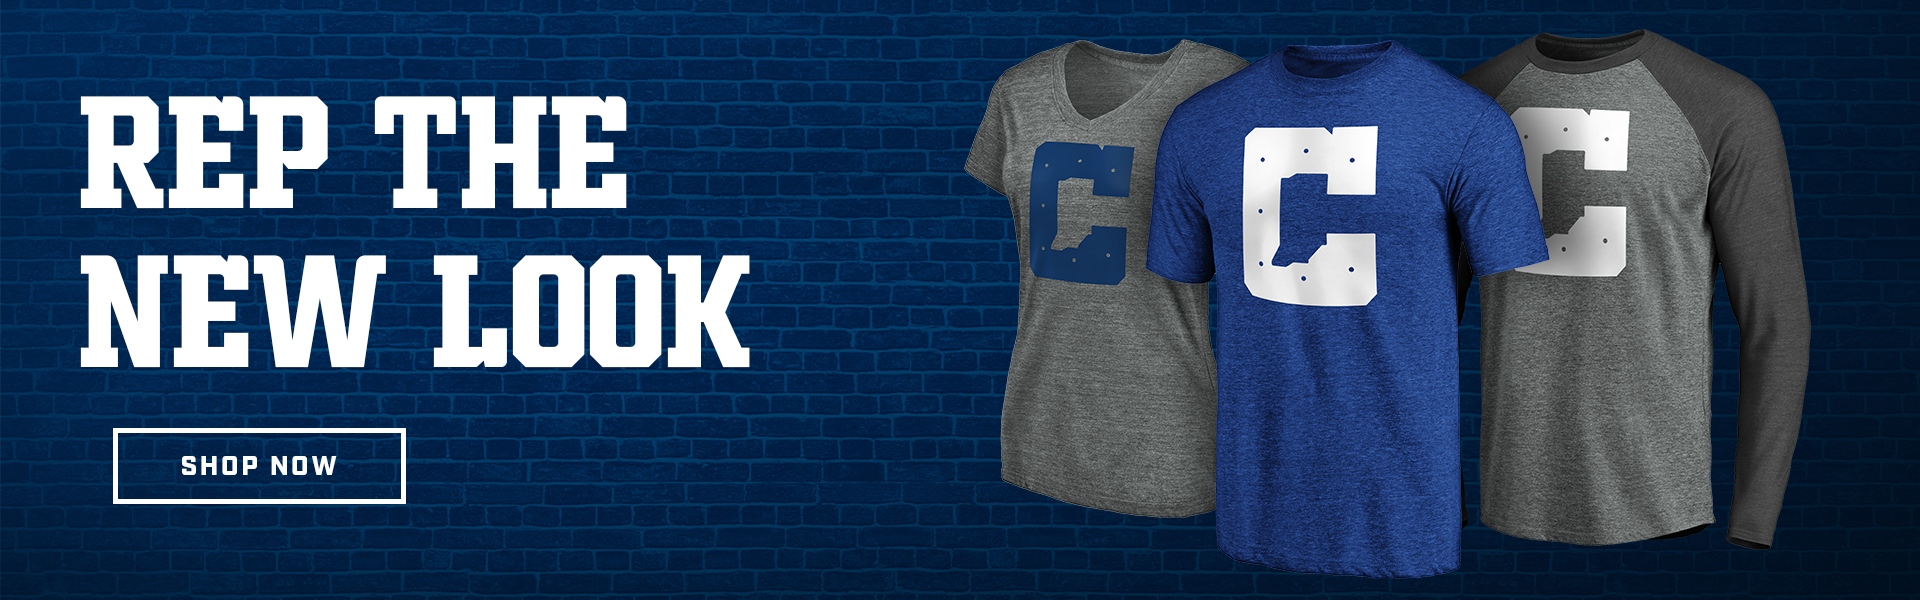 Rep the New Look. Click to shop now at the Colts Pro Shop